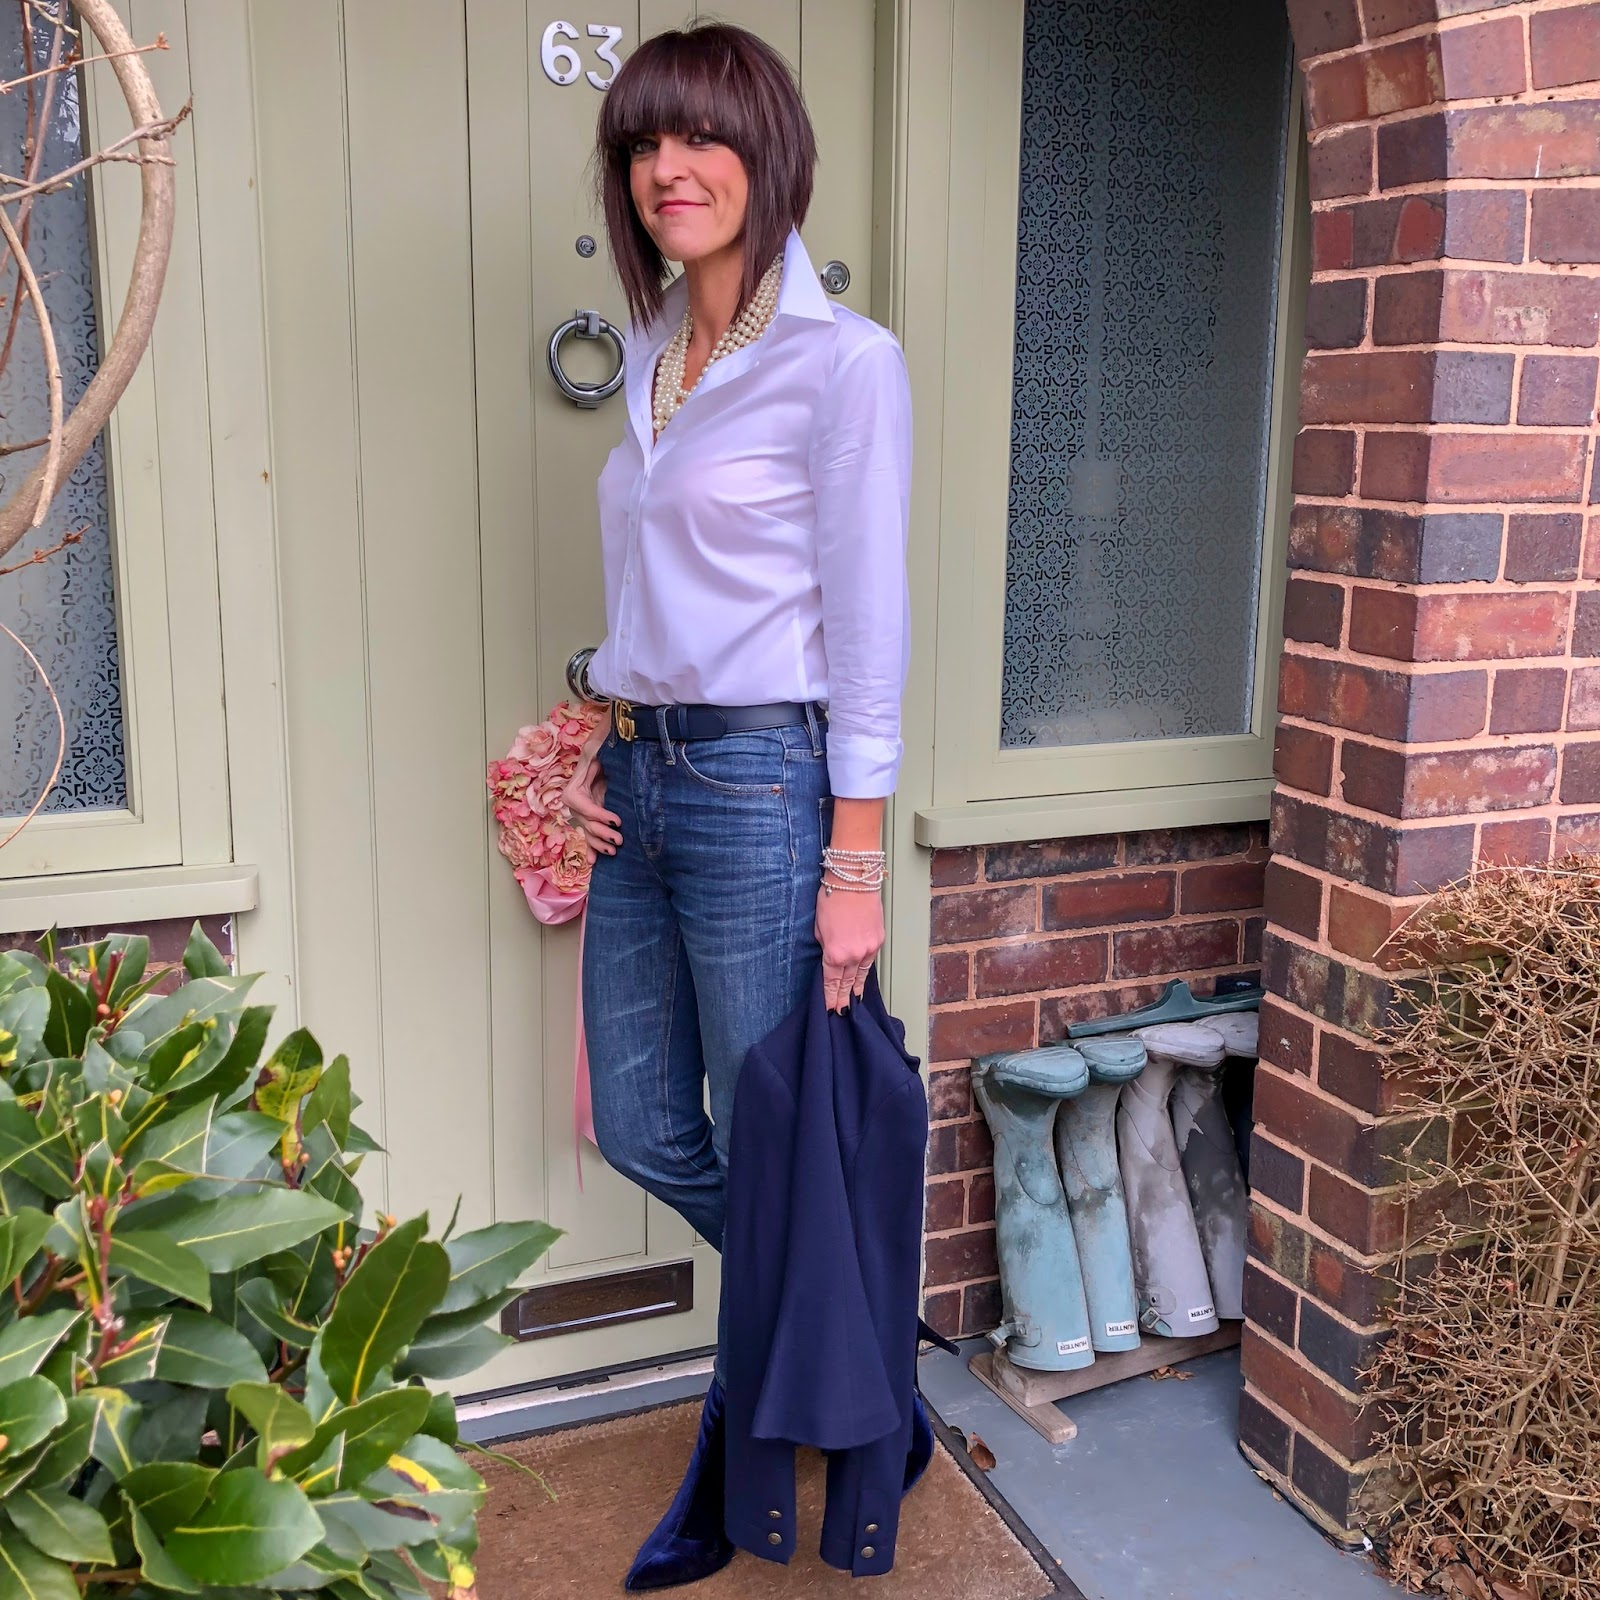 my midlife fashion, hawes and curtis white poplin semi fitted shirt single cuff, ralph lauren wool military jacket, j crew twisted hammock pearl necklace, gucci double GG belt, j crew cropped kick flare jeans, marks and spencer stiletto heel side zip ankle boots